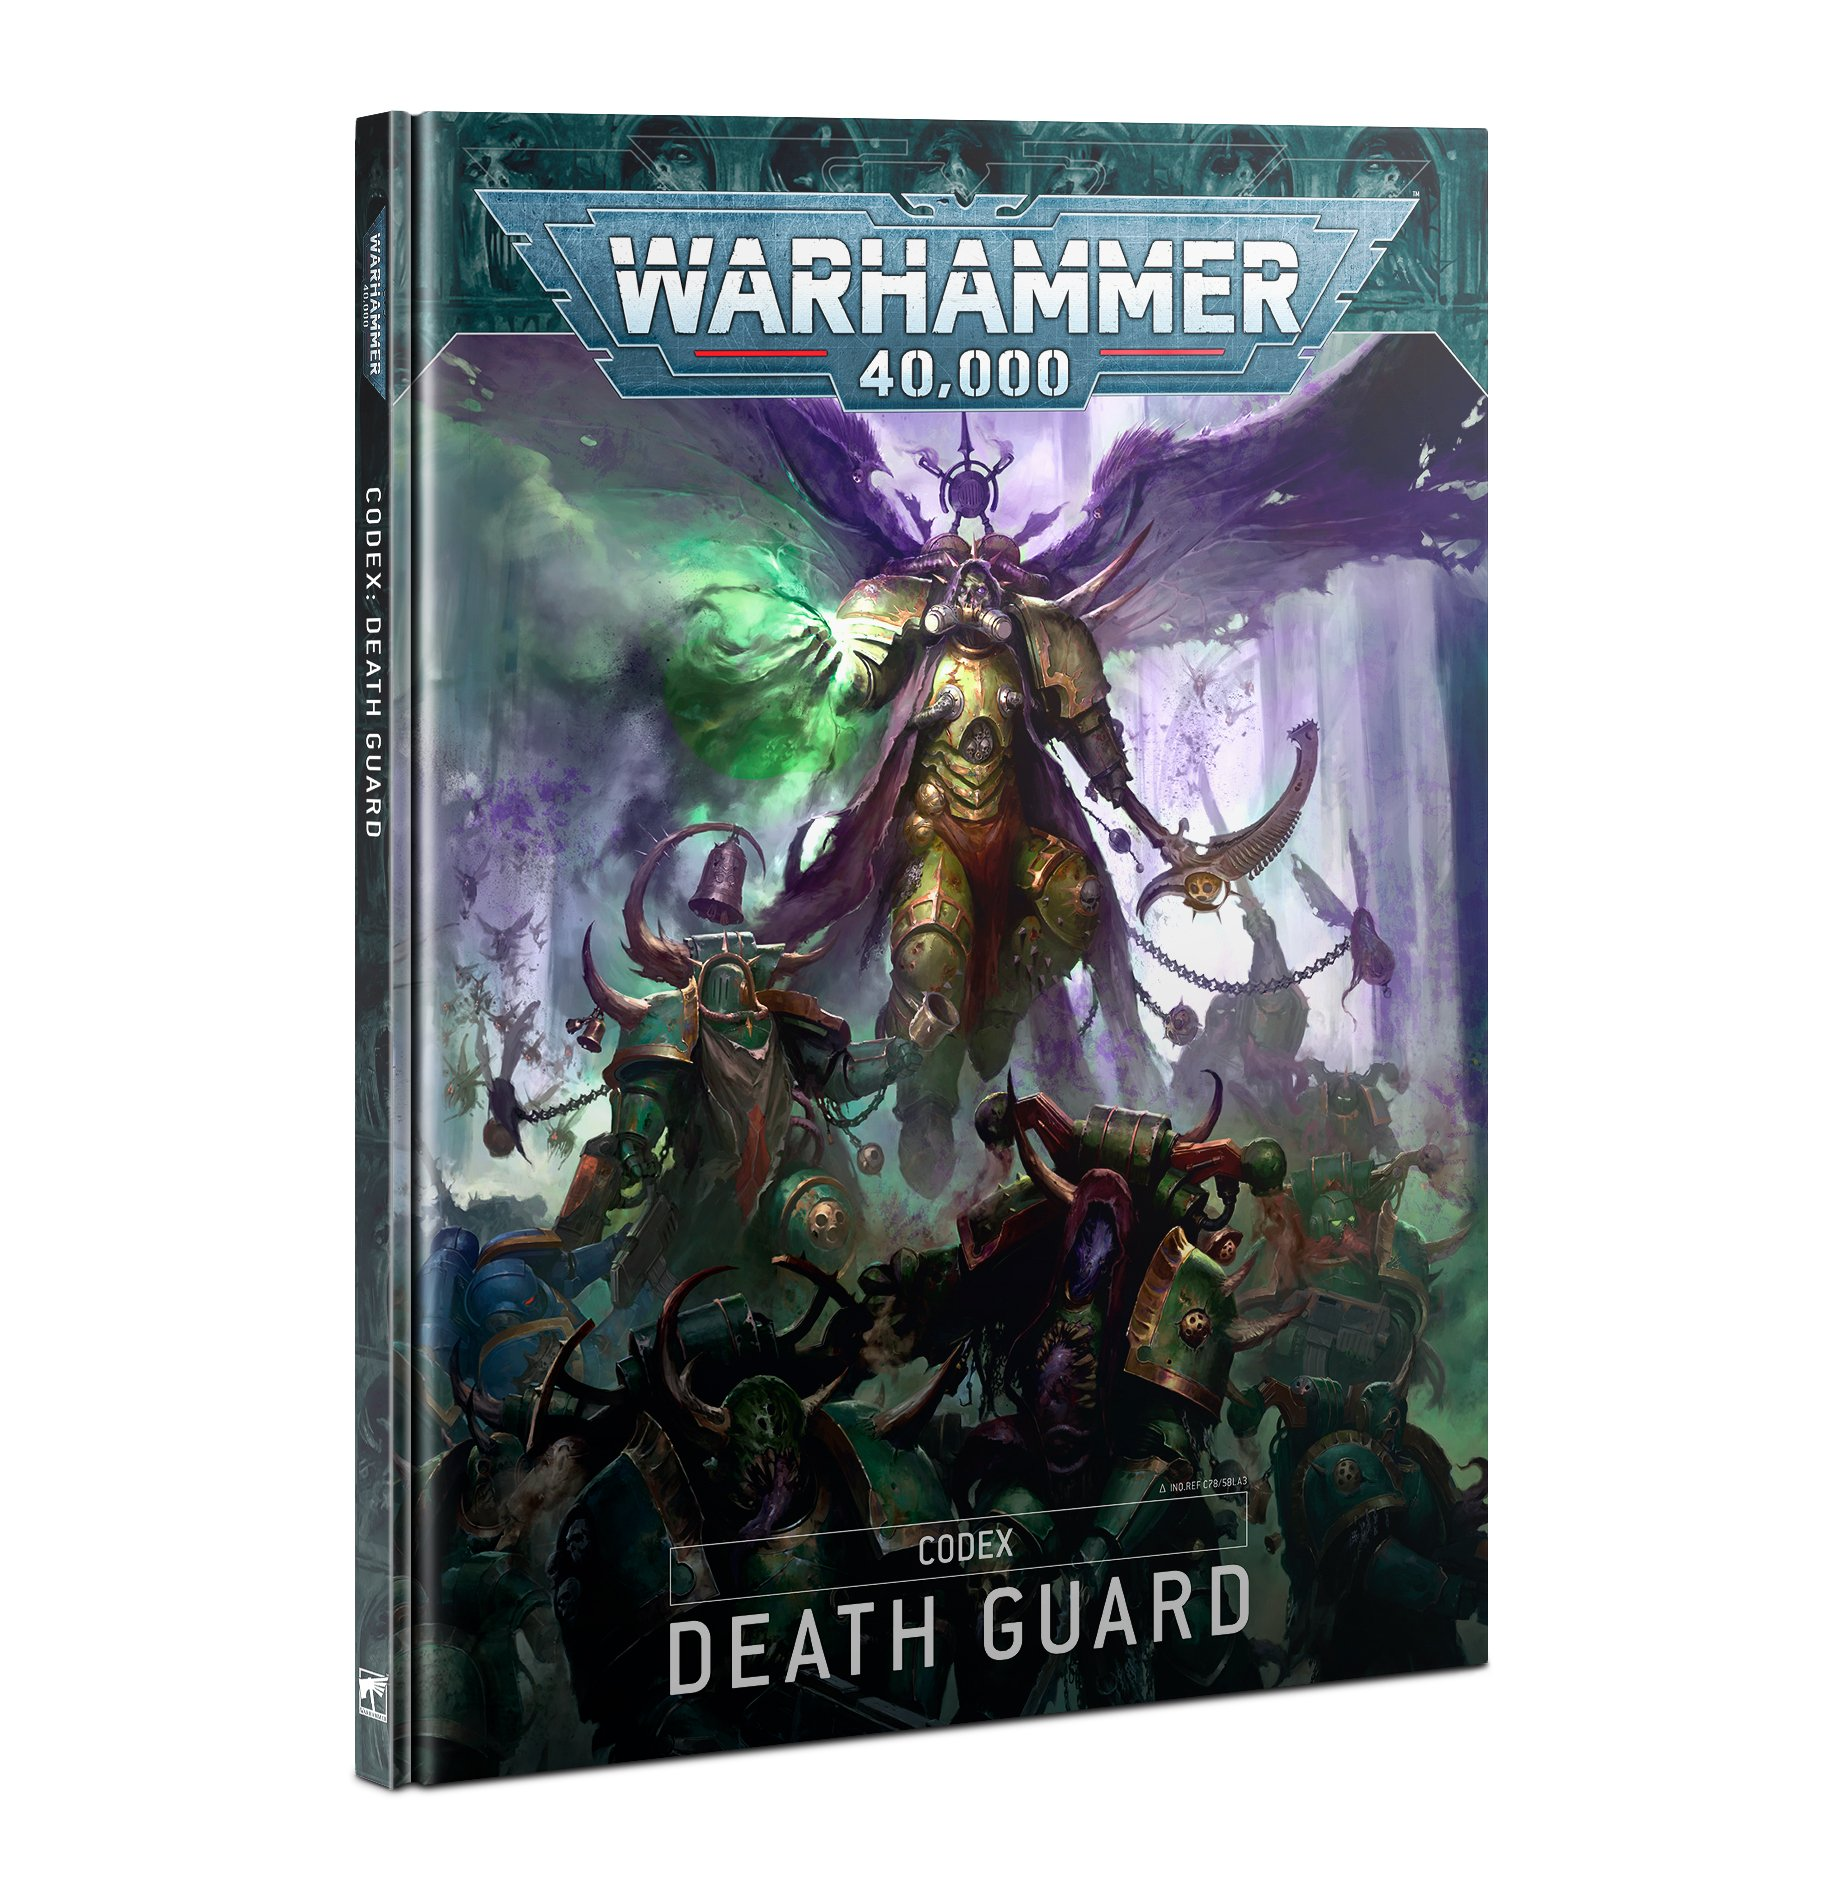 Warhammer 40,000 Death Guard Codex 9th edition